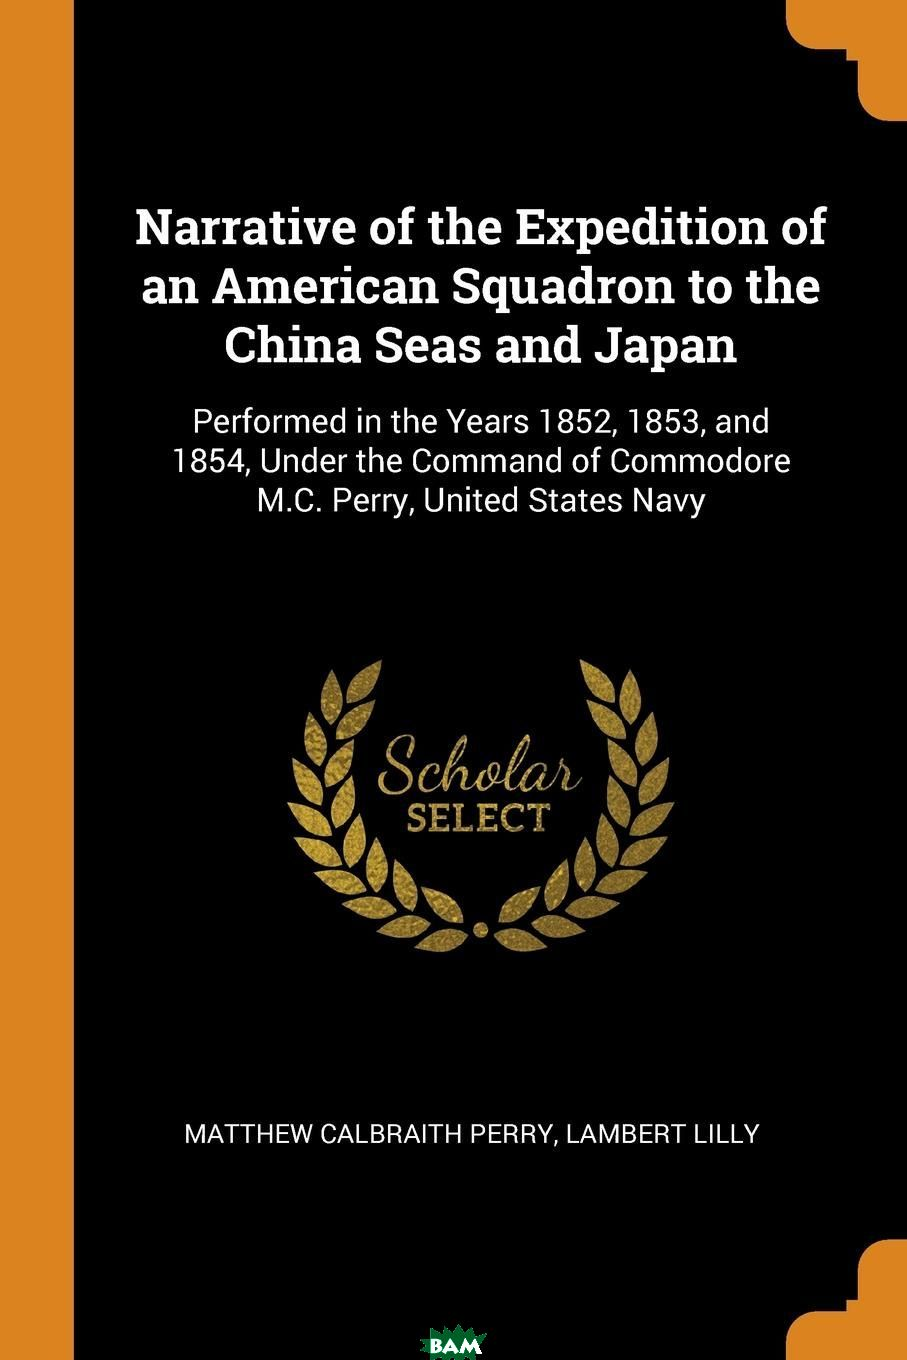 Купить Narrative of the Expedition of an American Squadron to the China Seas and Japan. Performed in the Years 1852, 1853, and 1854, Under the Command of Commodore M.C. Perry, United States Navy, Matthew Calbraith Perry, Lambert Lilly, 9780344186325